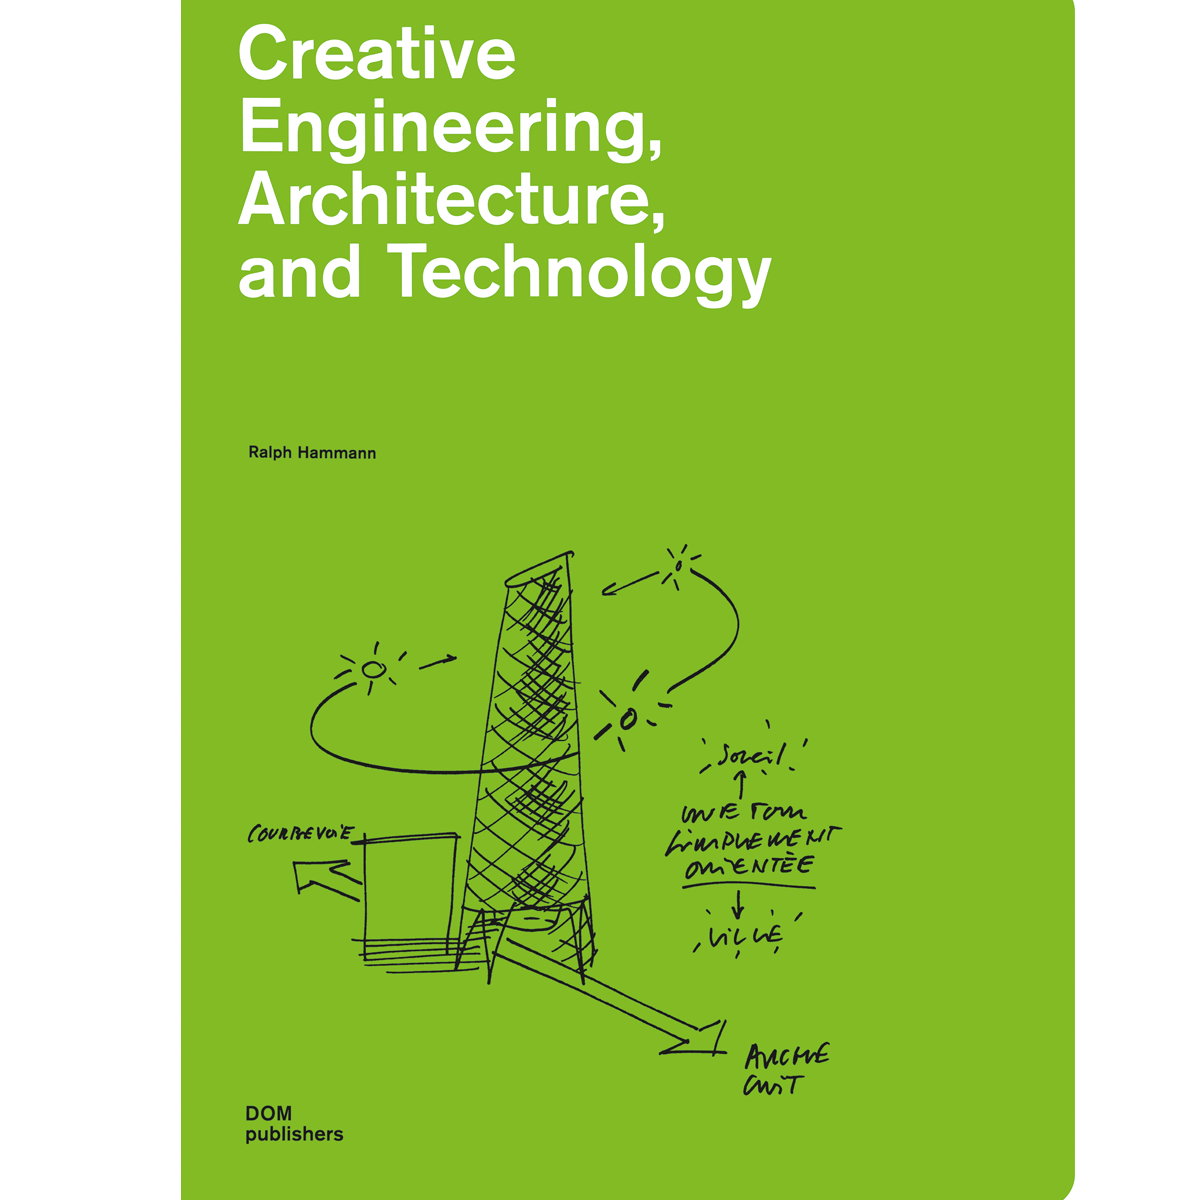 Creative Engineering, Architecture and Technology